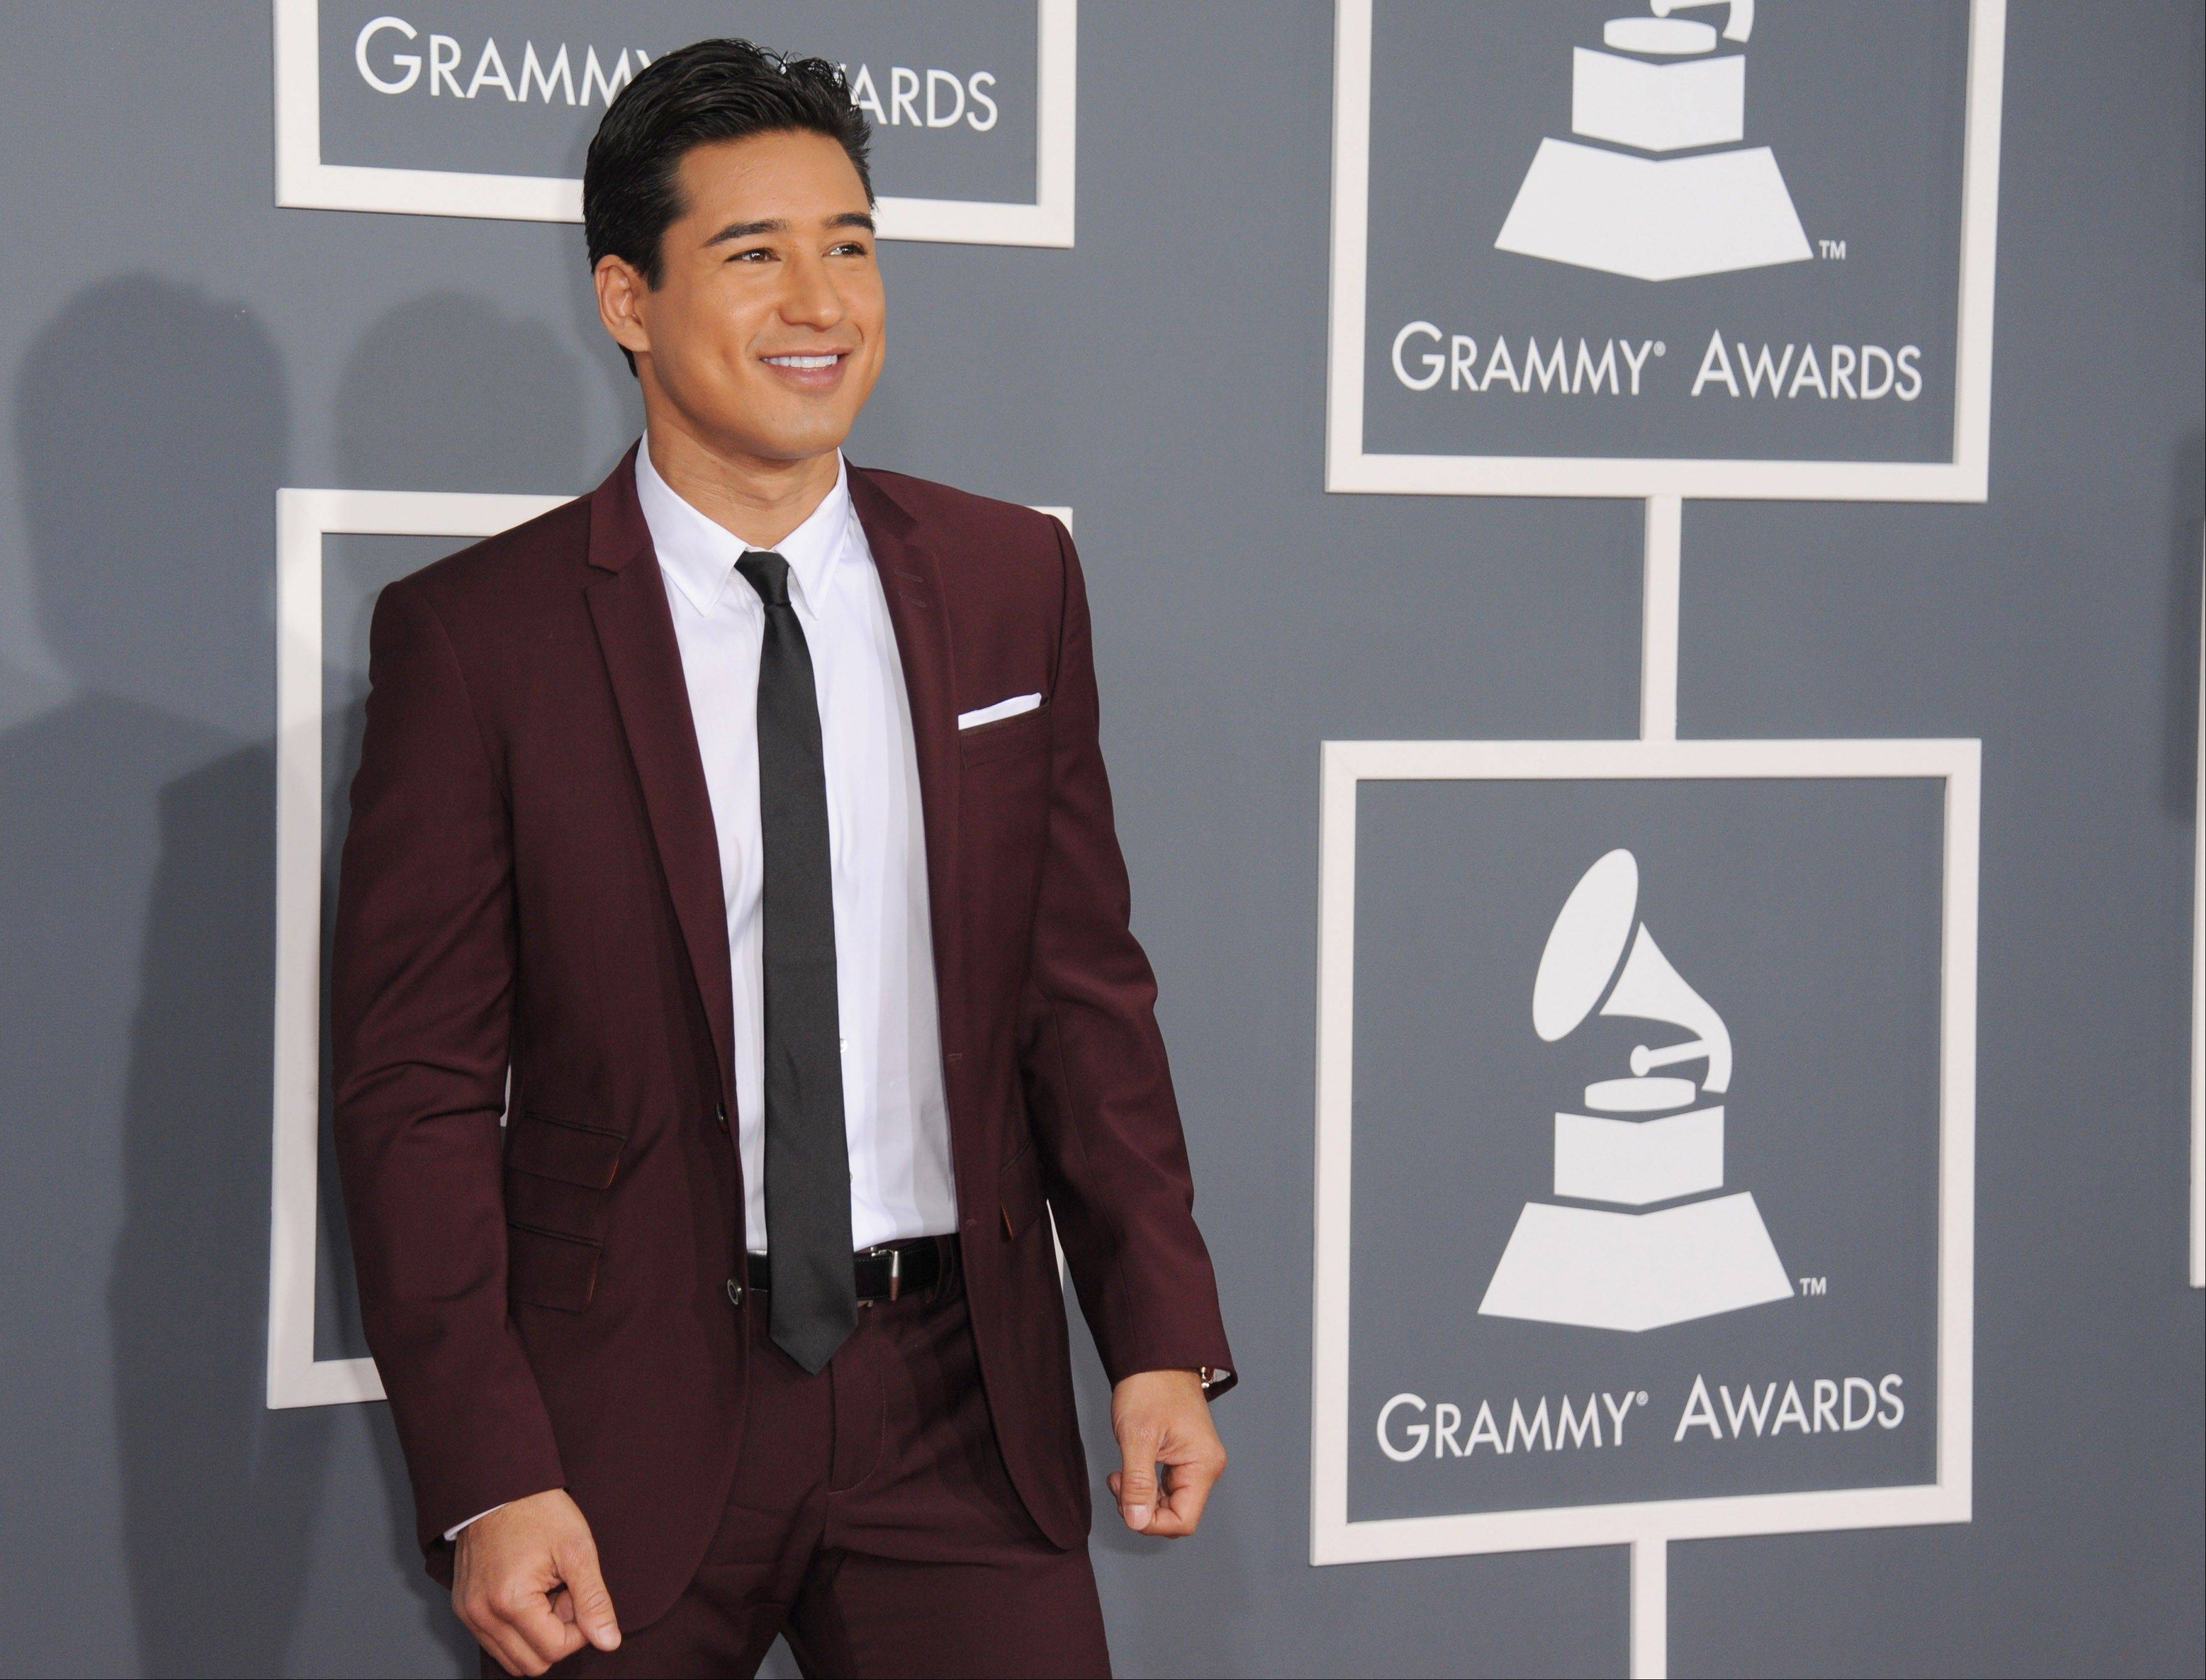 """X Factor"" Mario Lopez arrives at the 55th annual Grammy Awards on Sunday, Feb. 10, 2013, in Los Angeles."